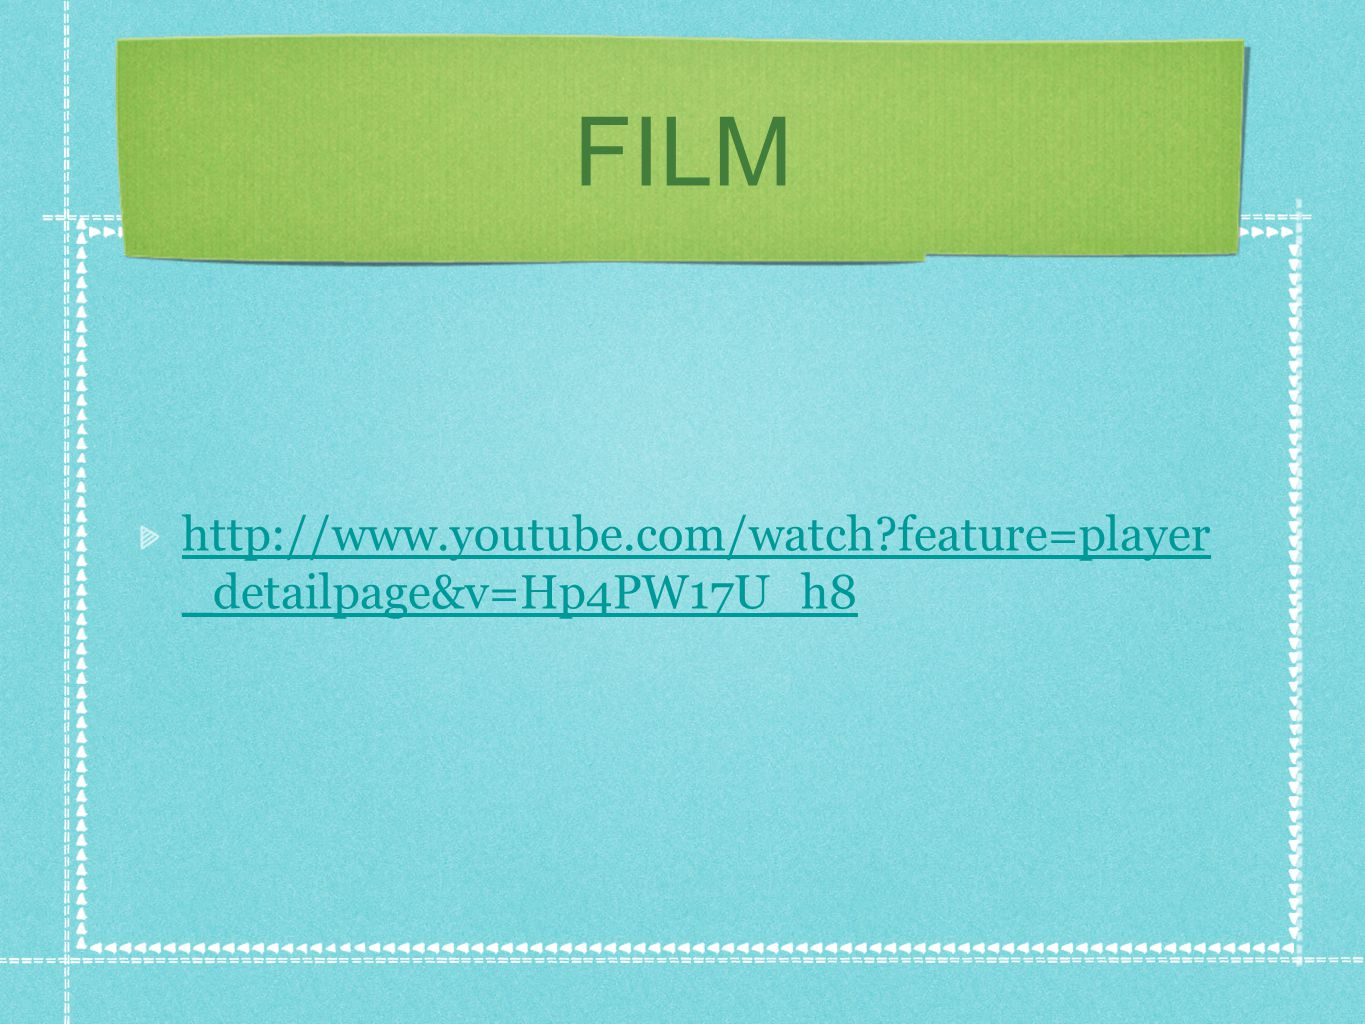 FILM   feature=player _detailpage&v=Hp4PW17U_h8